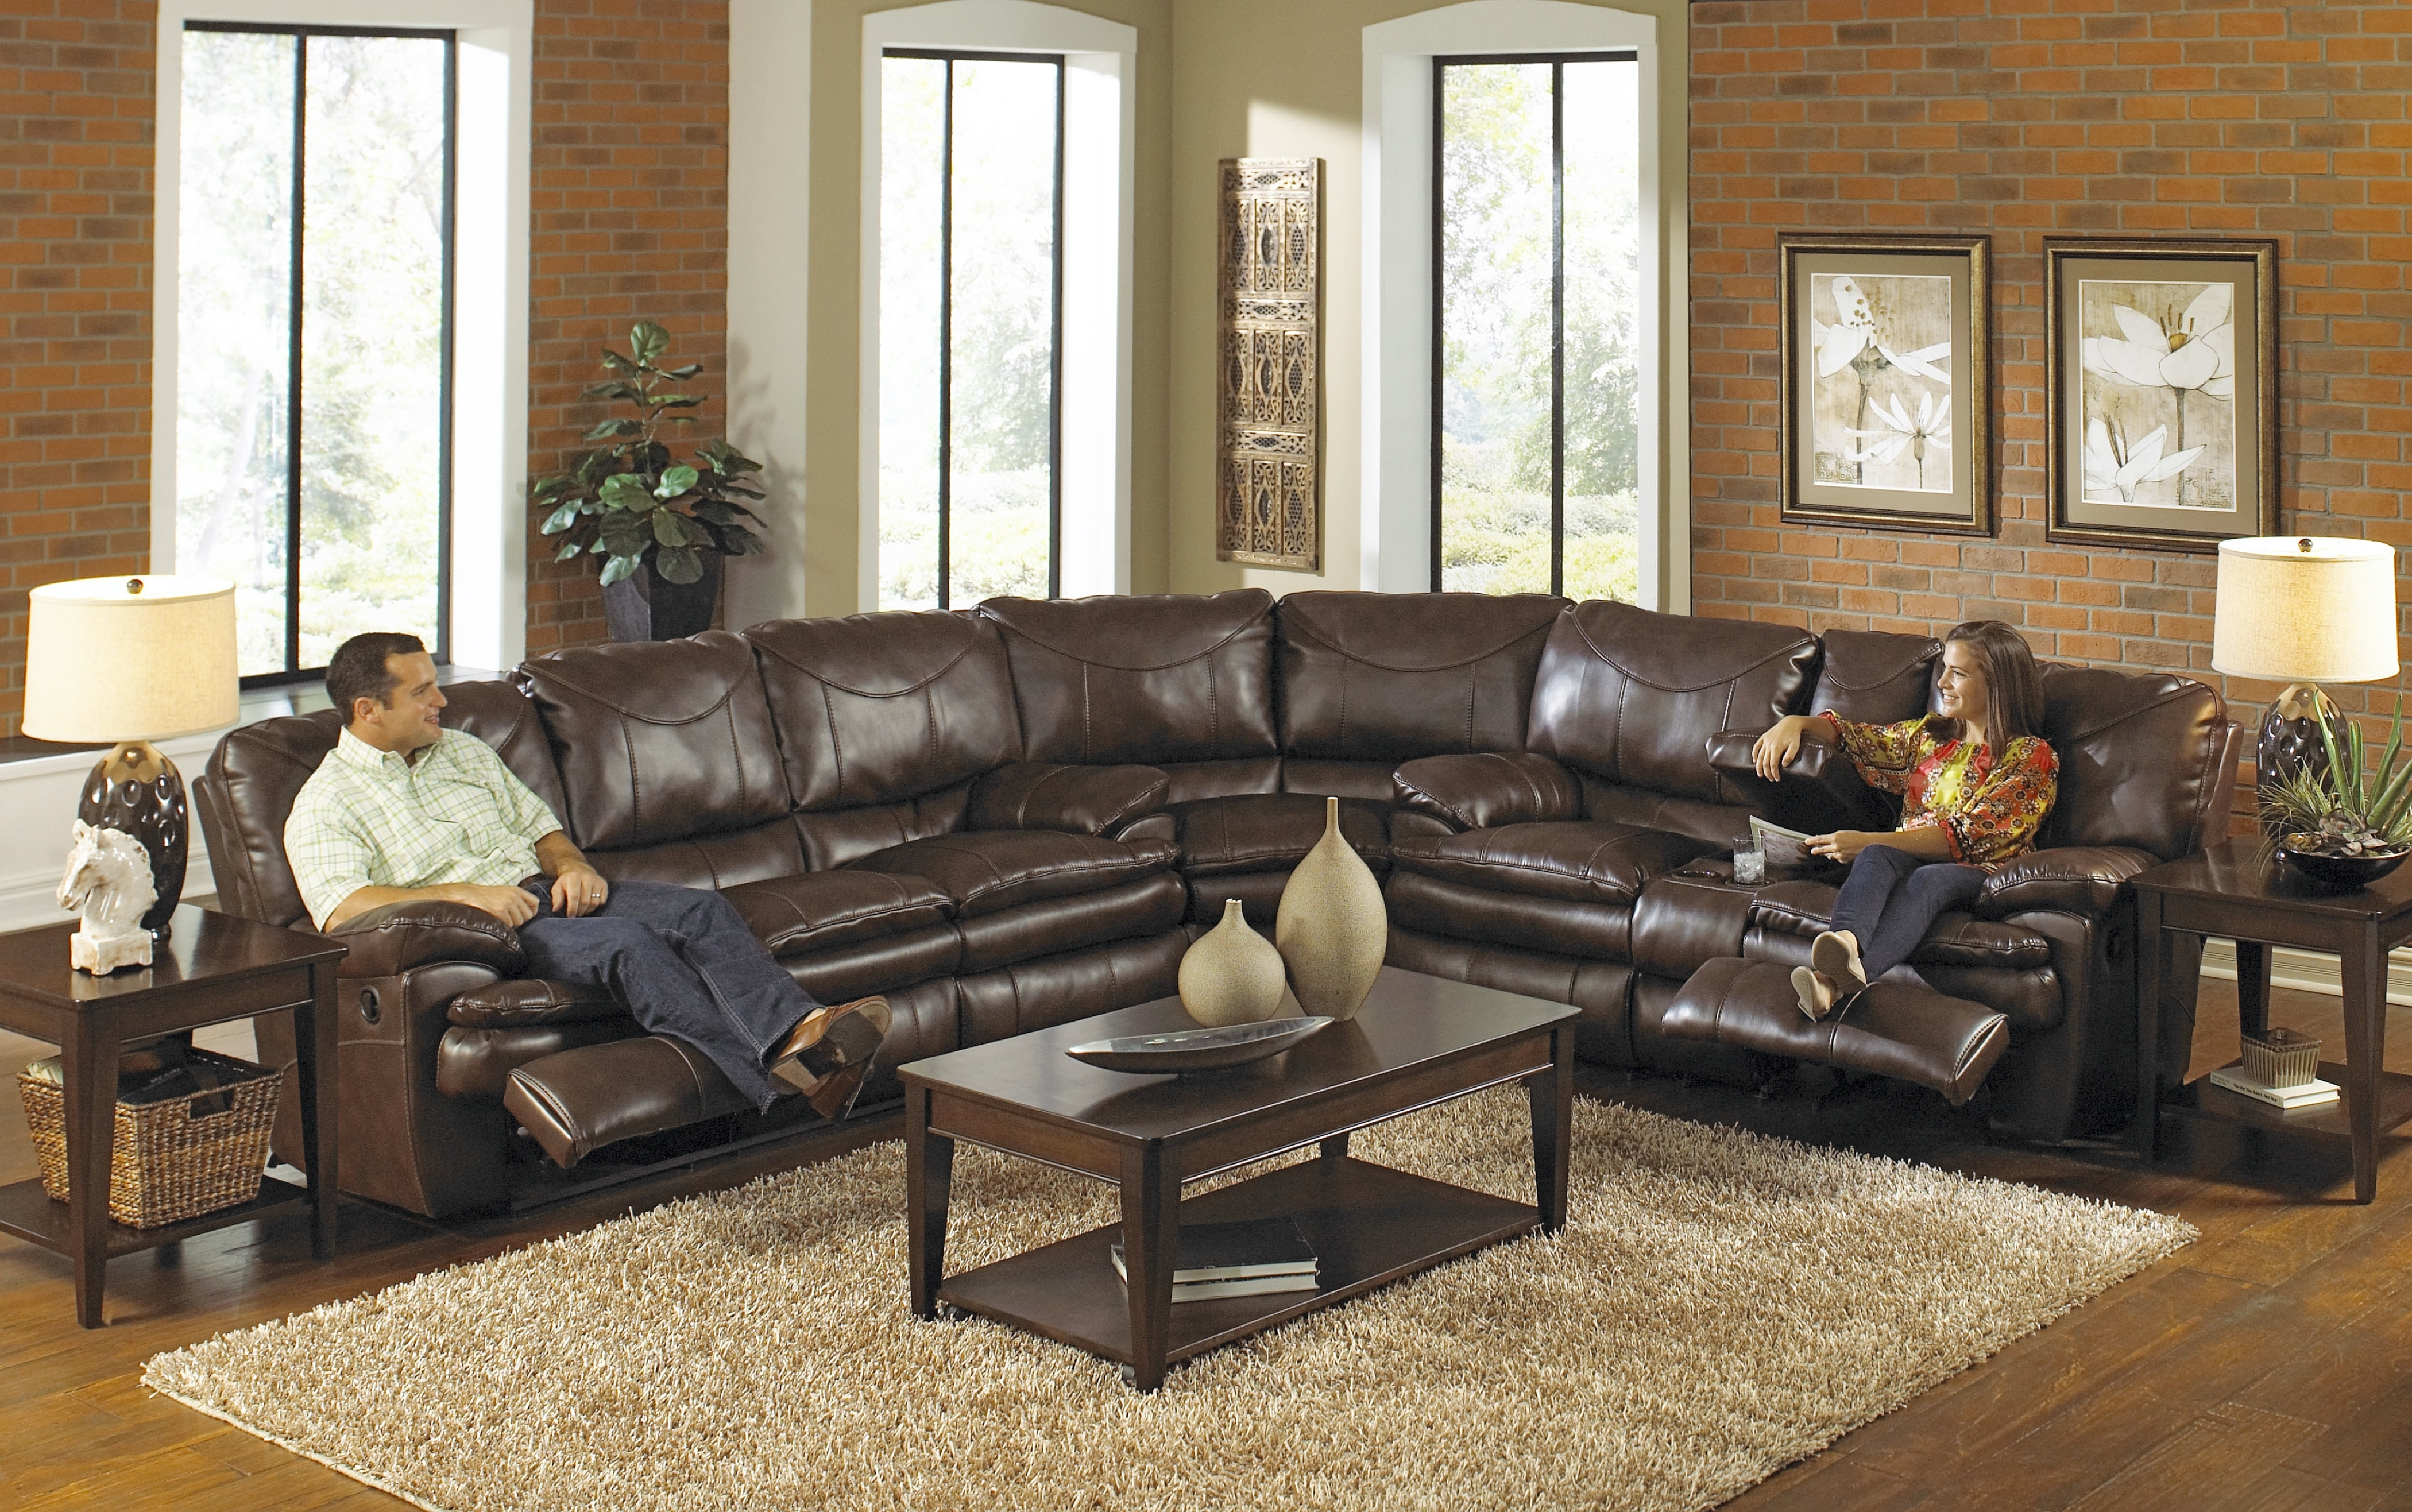 Delivered Sofa With Chaise And Recliner Buy Large Sectional Sofas With Regard To Virginia Sectional Sofas (View 9 of 10)